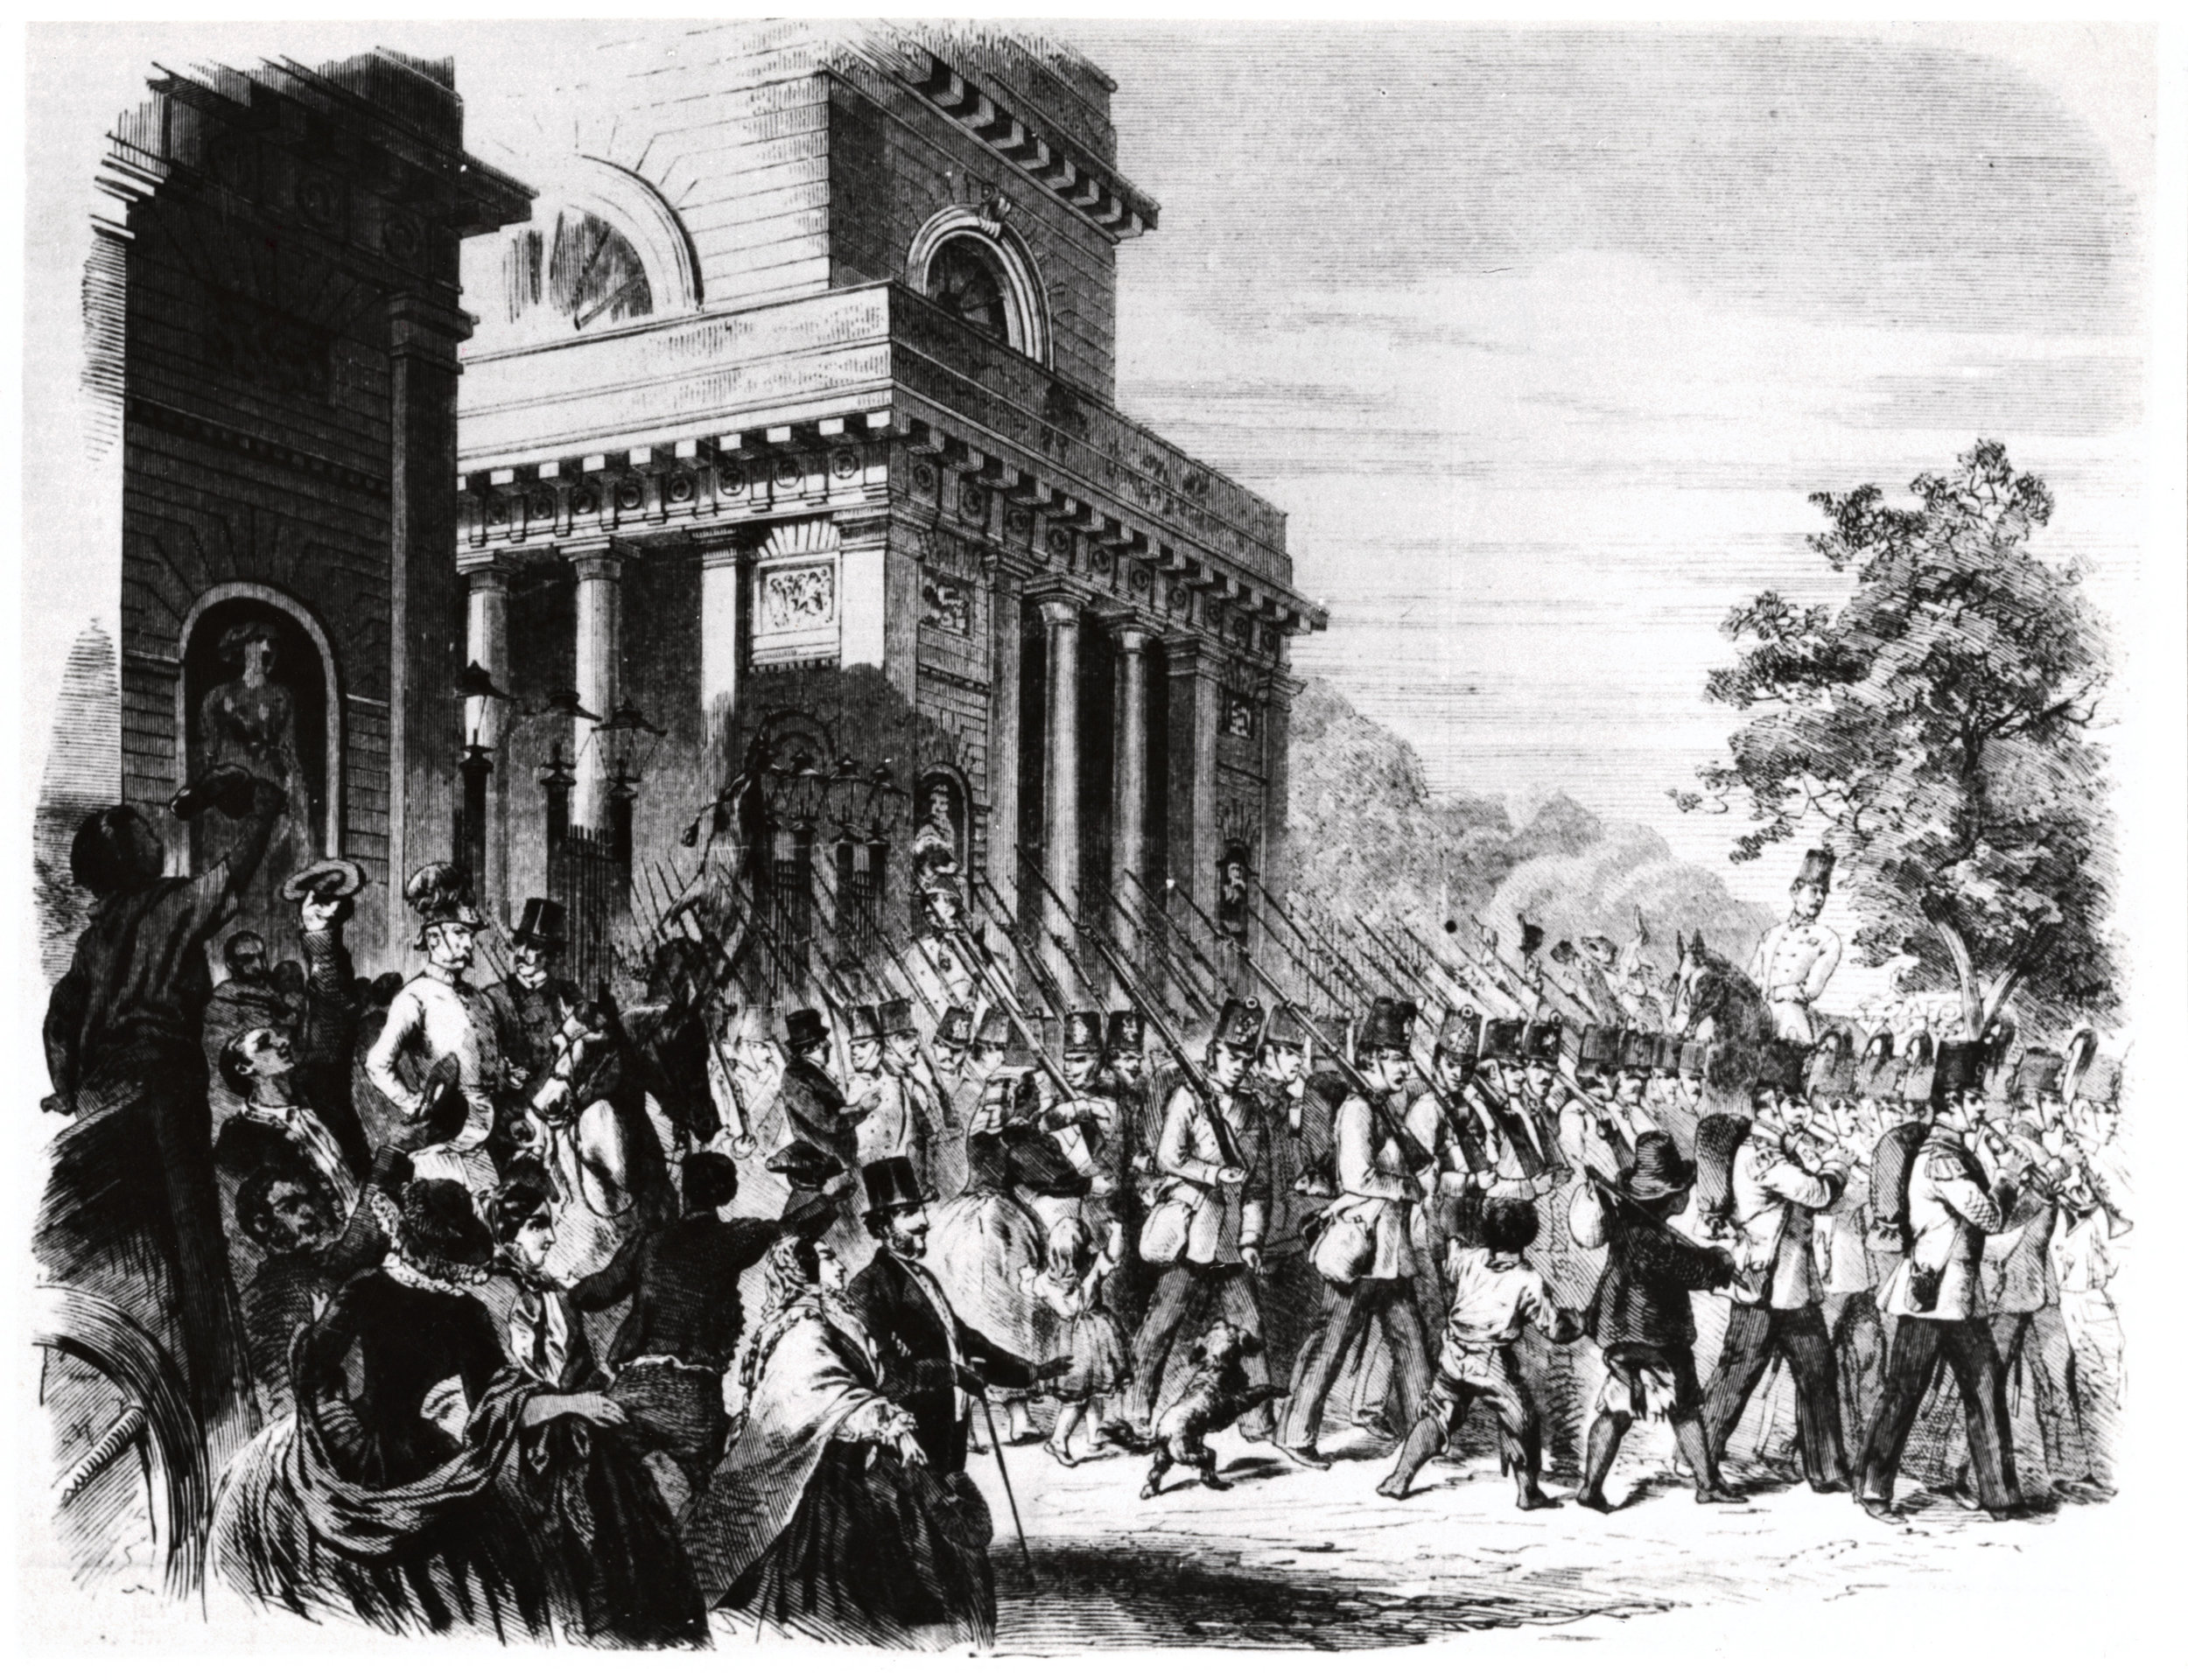 On May 21, 1859, Austrian troops depart for the battlefield from Milan.